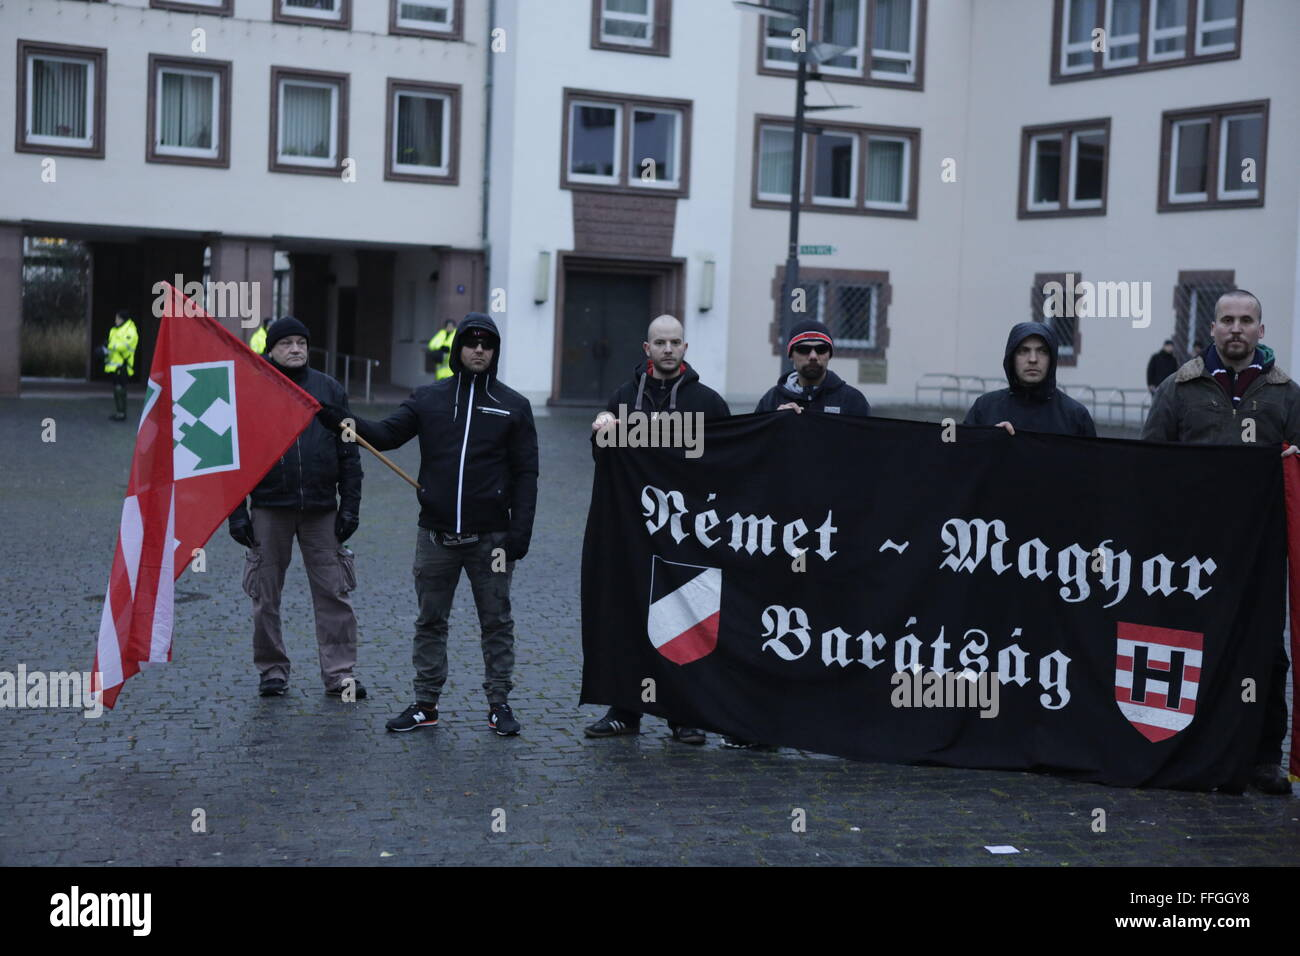 Worms, Germany. 13th February 2016. The right wing protesters hold a small rally at the market square of Worms. Stock Photo